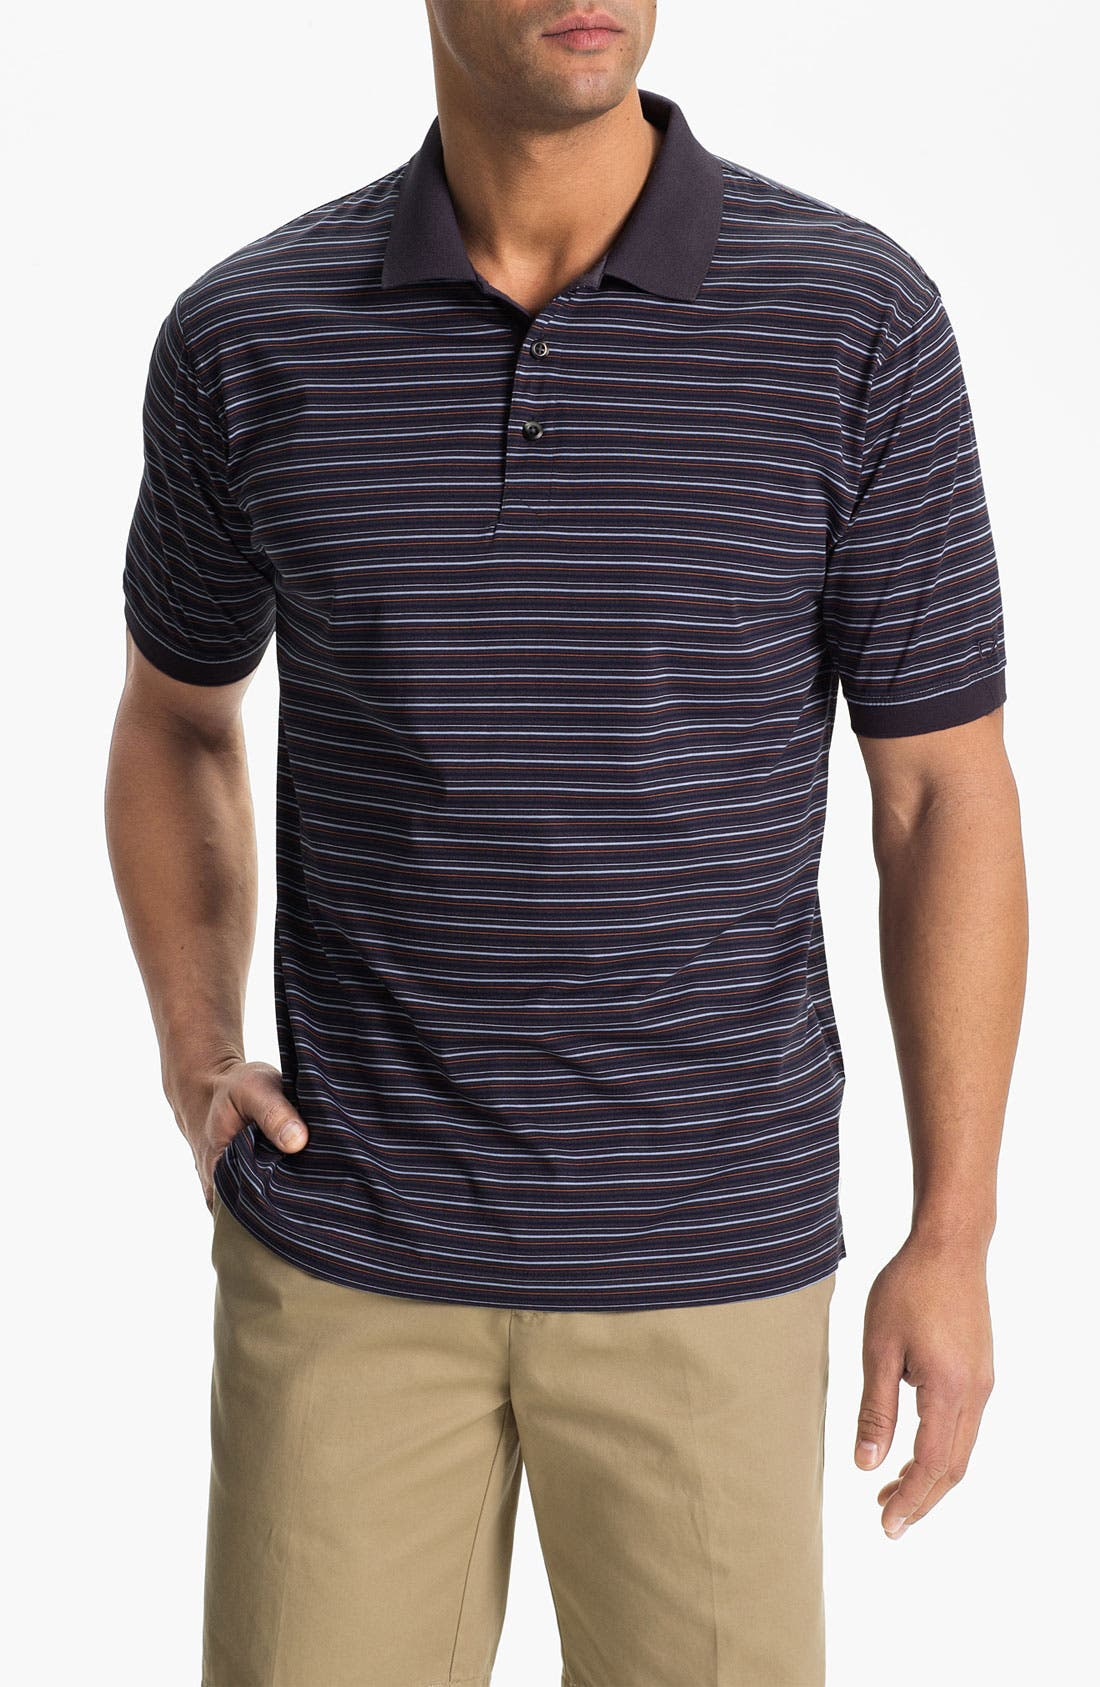 Main Image - Cutter & Buck '70/2's Performance Andrew Stripe' Regular Fit Polo (Online Only)